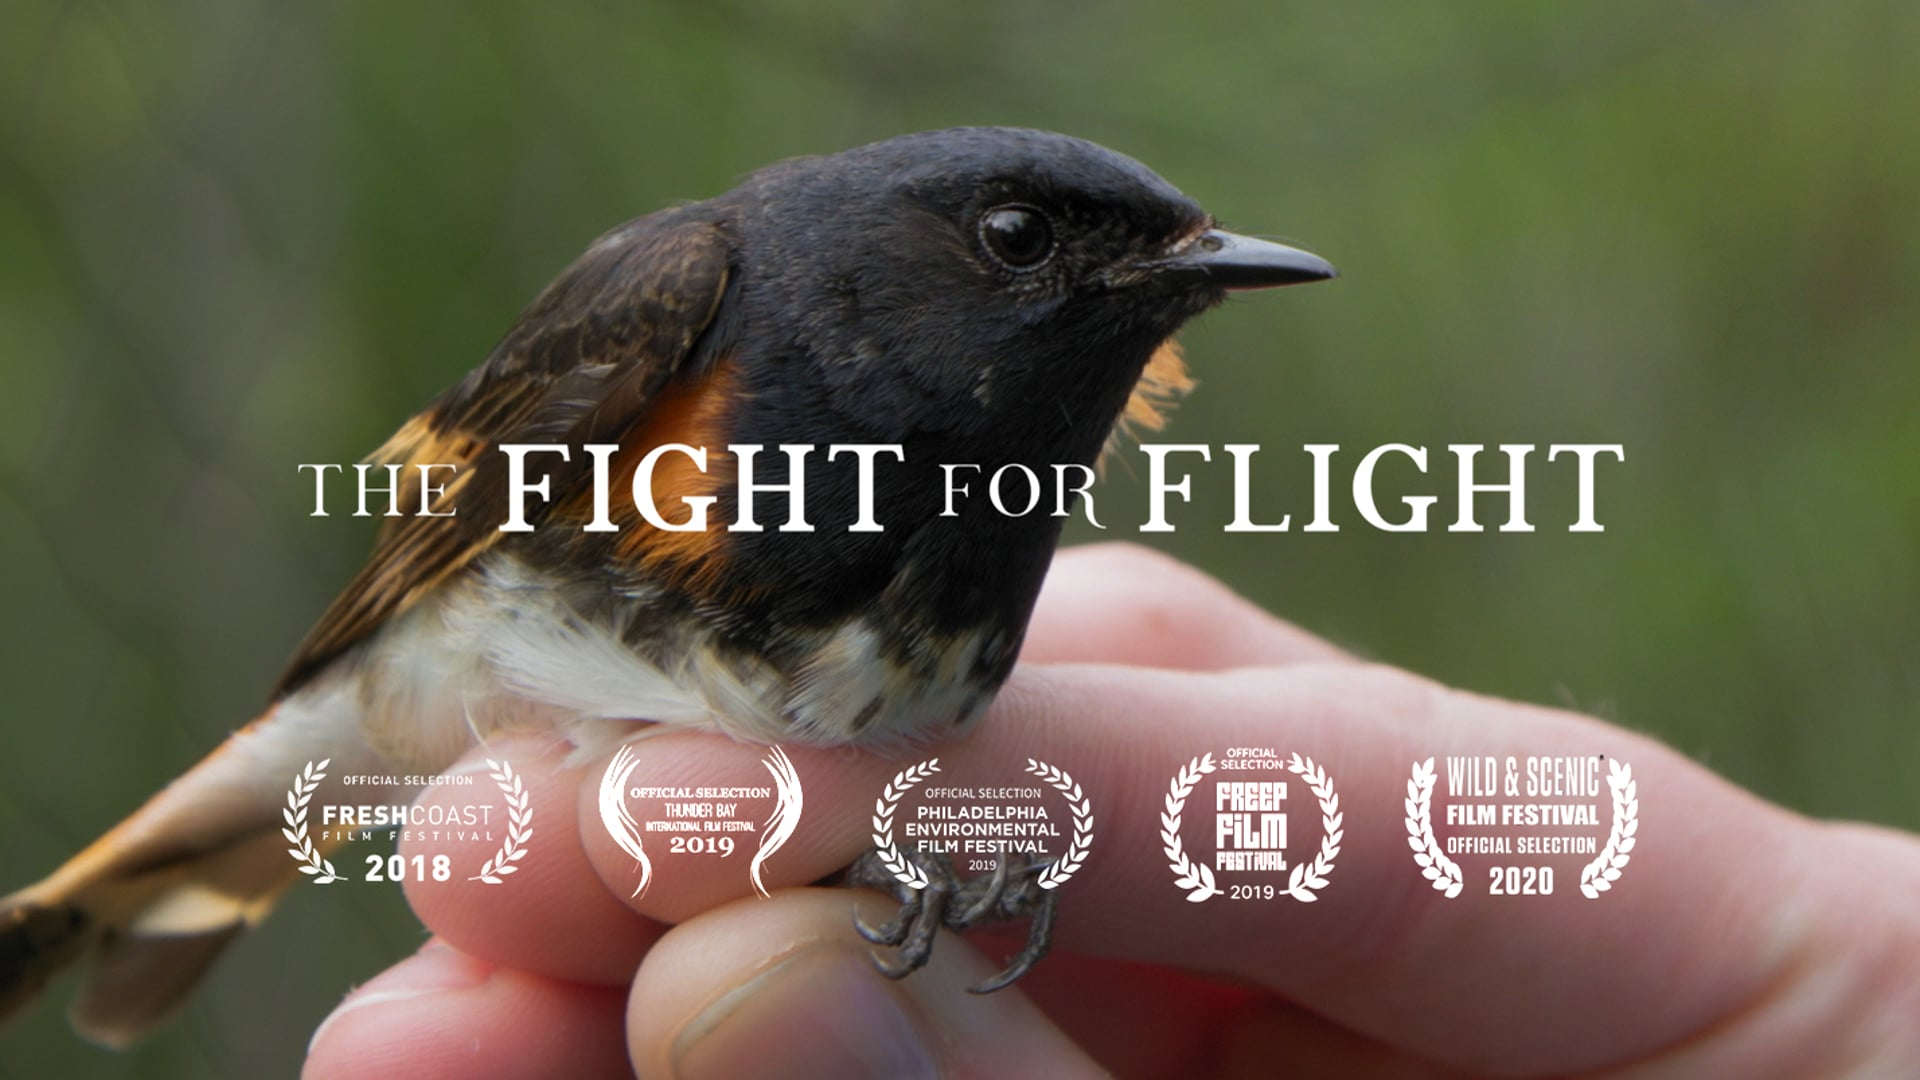 The Fight For Flight